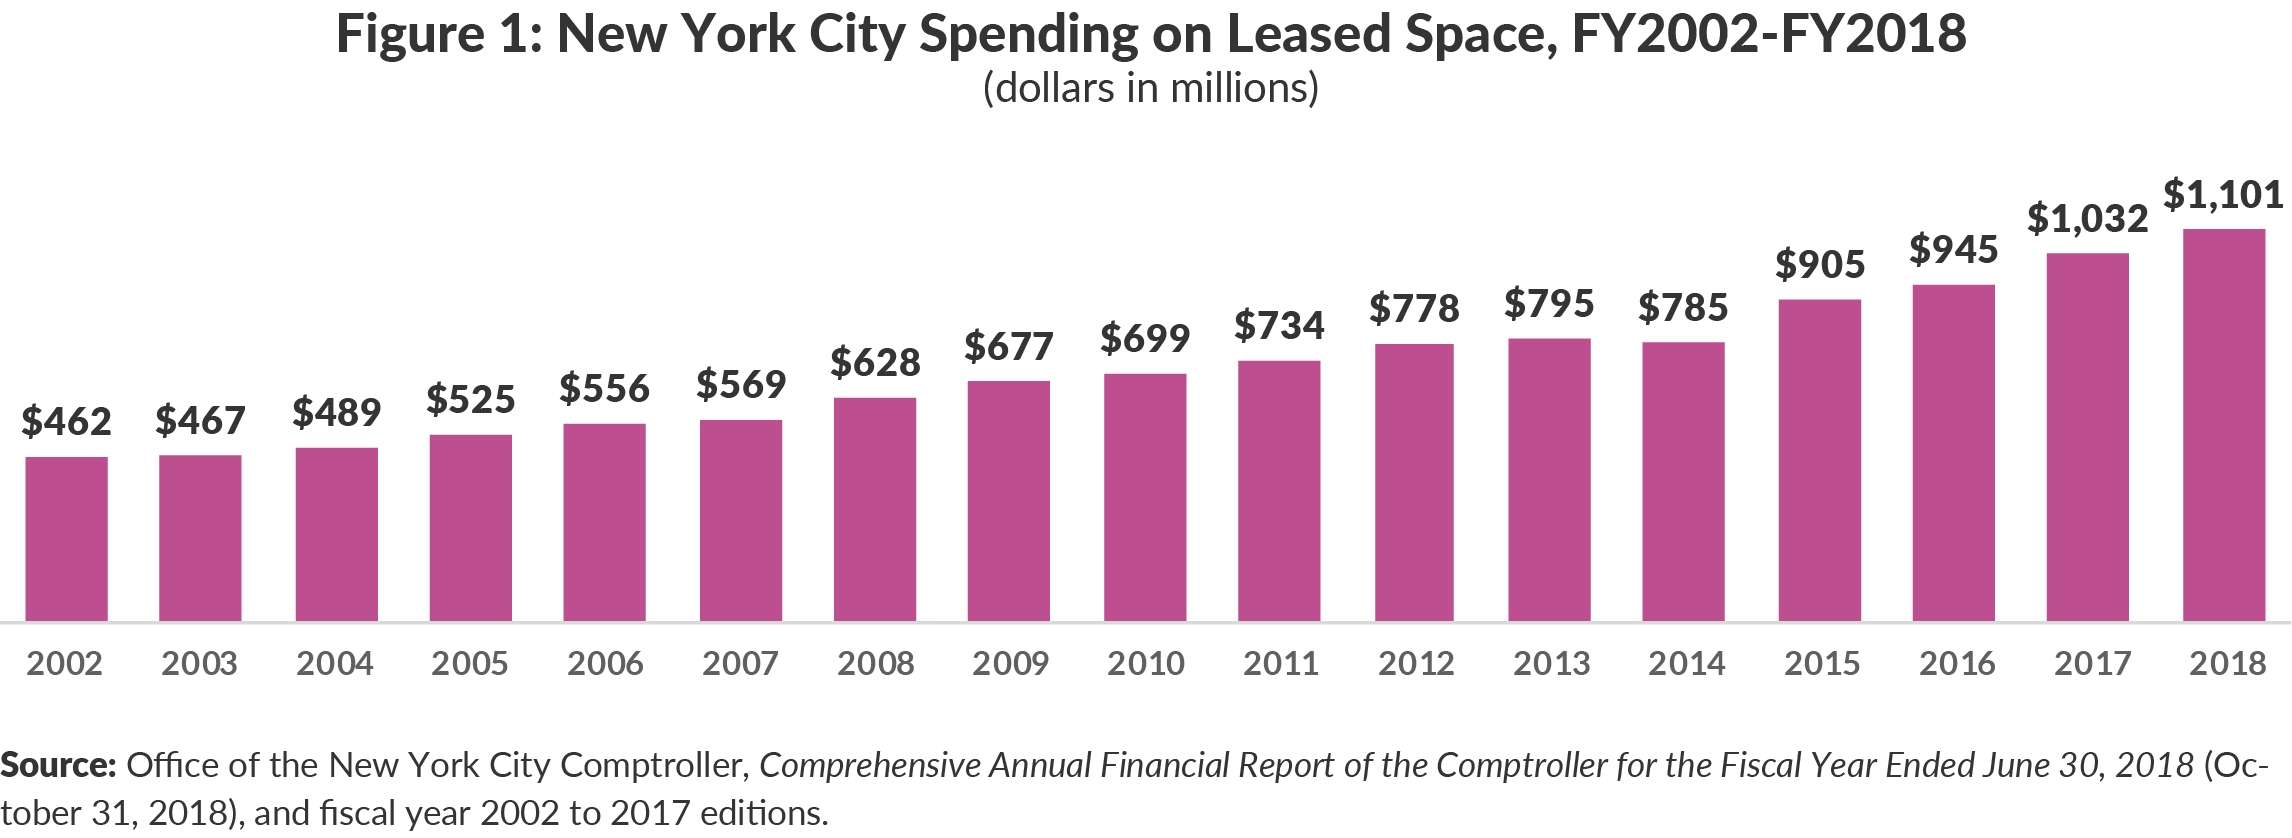 Figure 1: New York City Spending on Leased Space, FY2002-FY2018